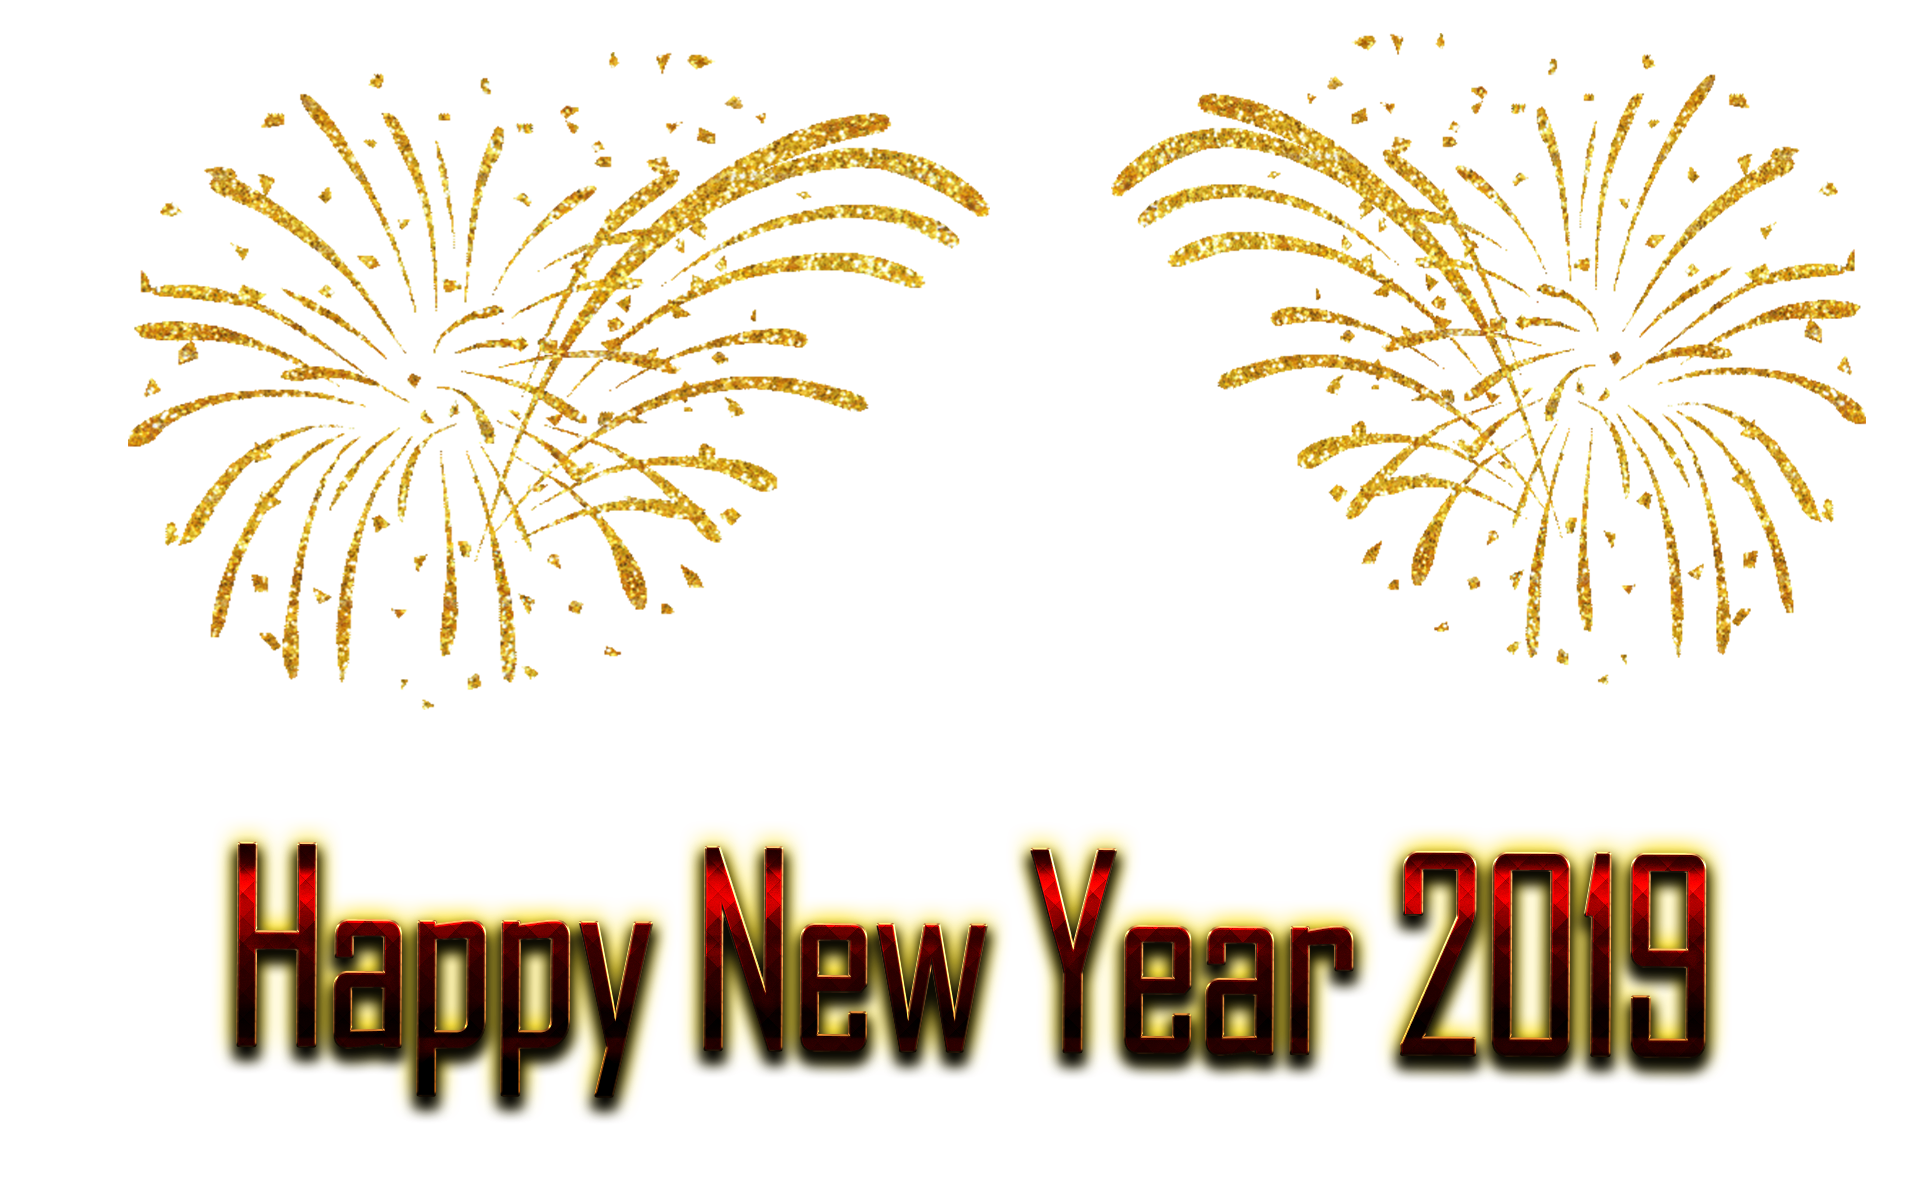 New Year PNG Free Image Download.